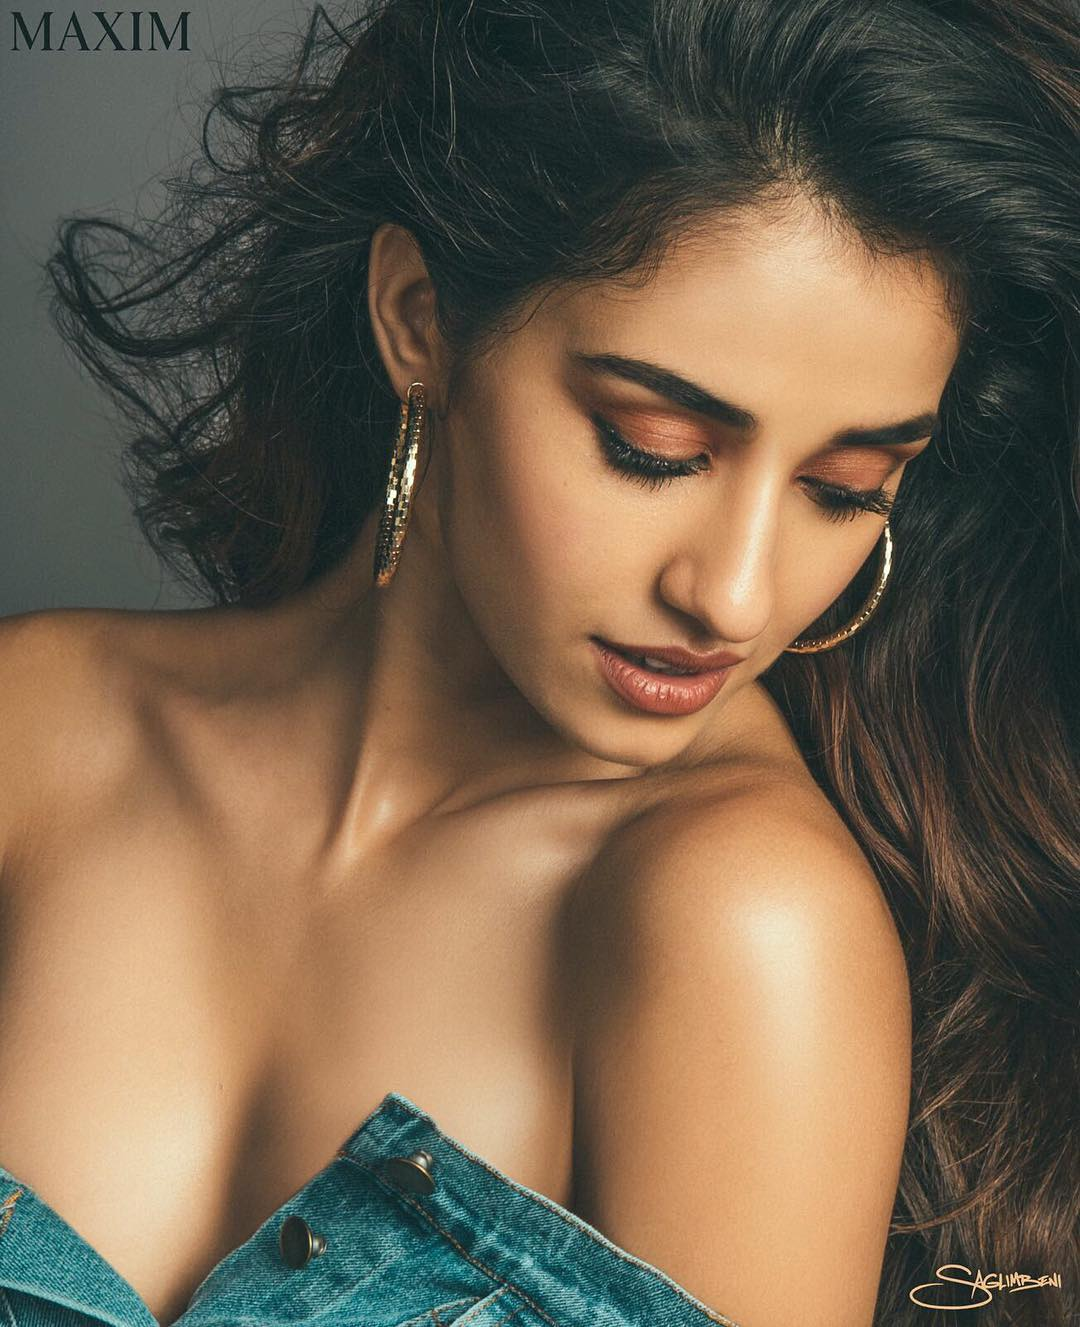 Disha Patani Sexy Boobs Pics on Beautifull Dress